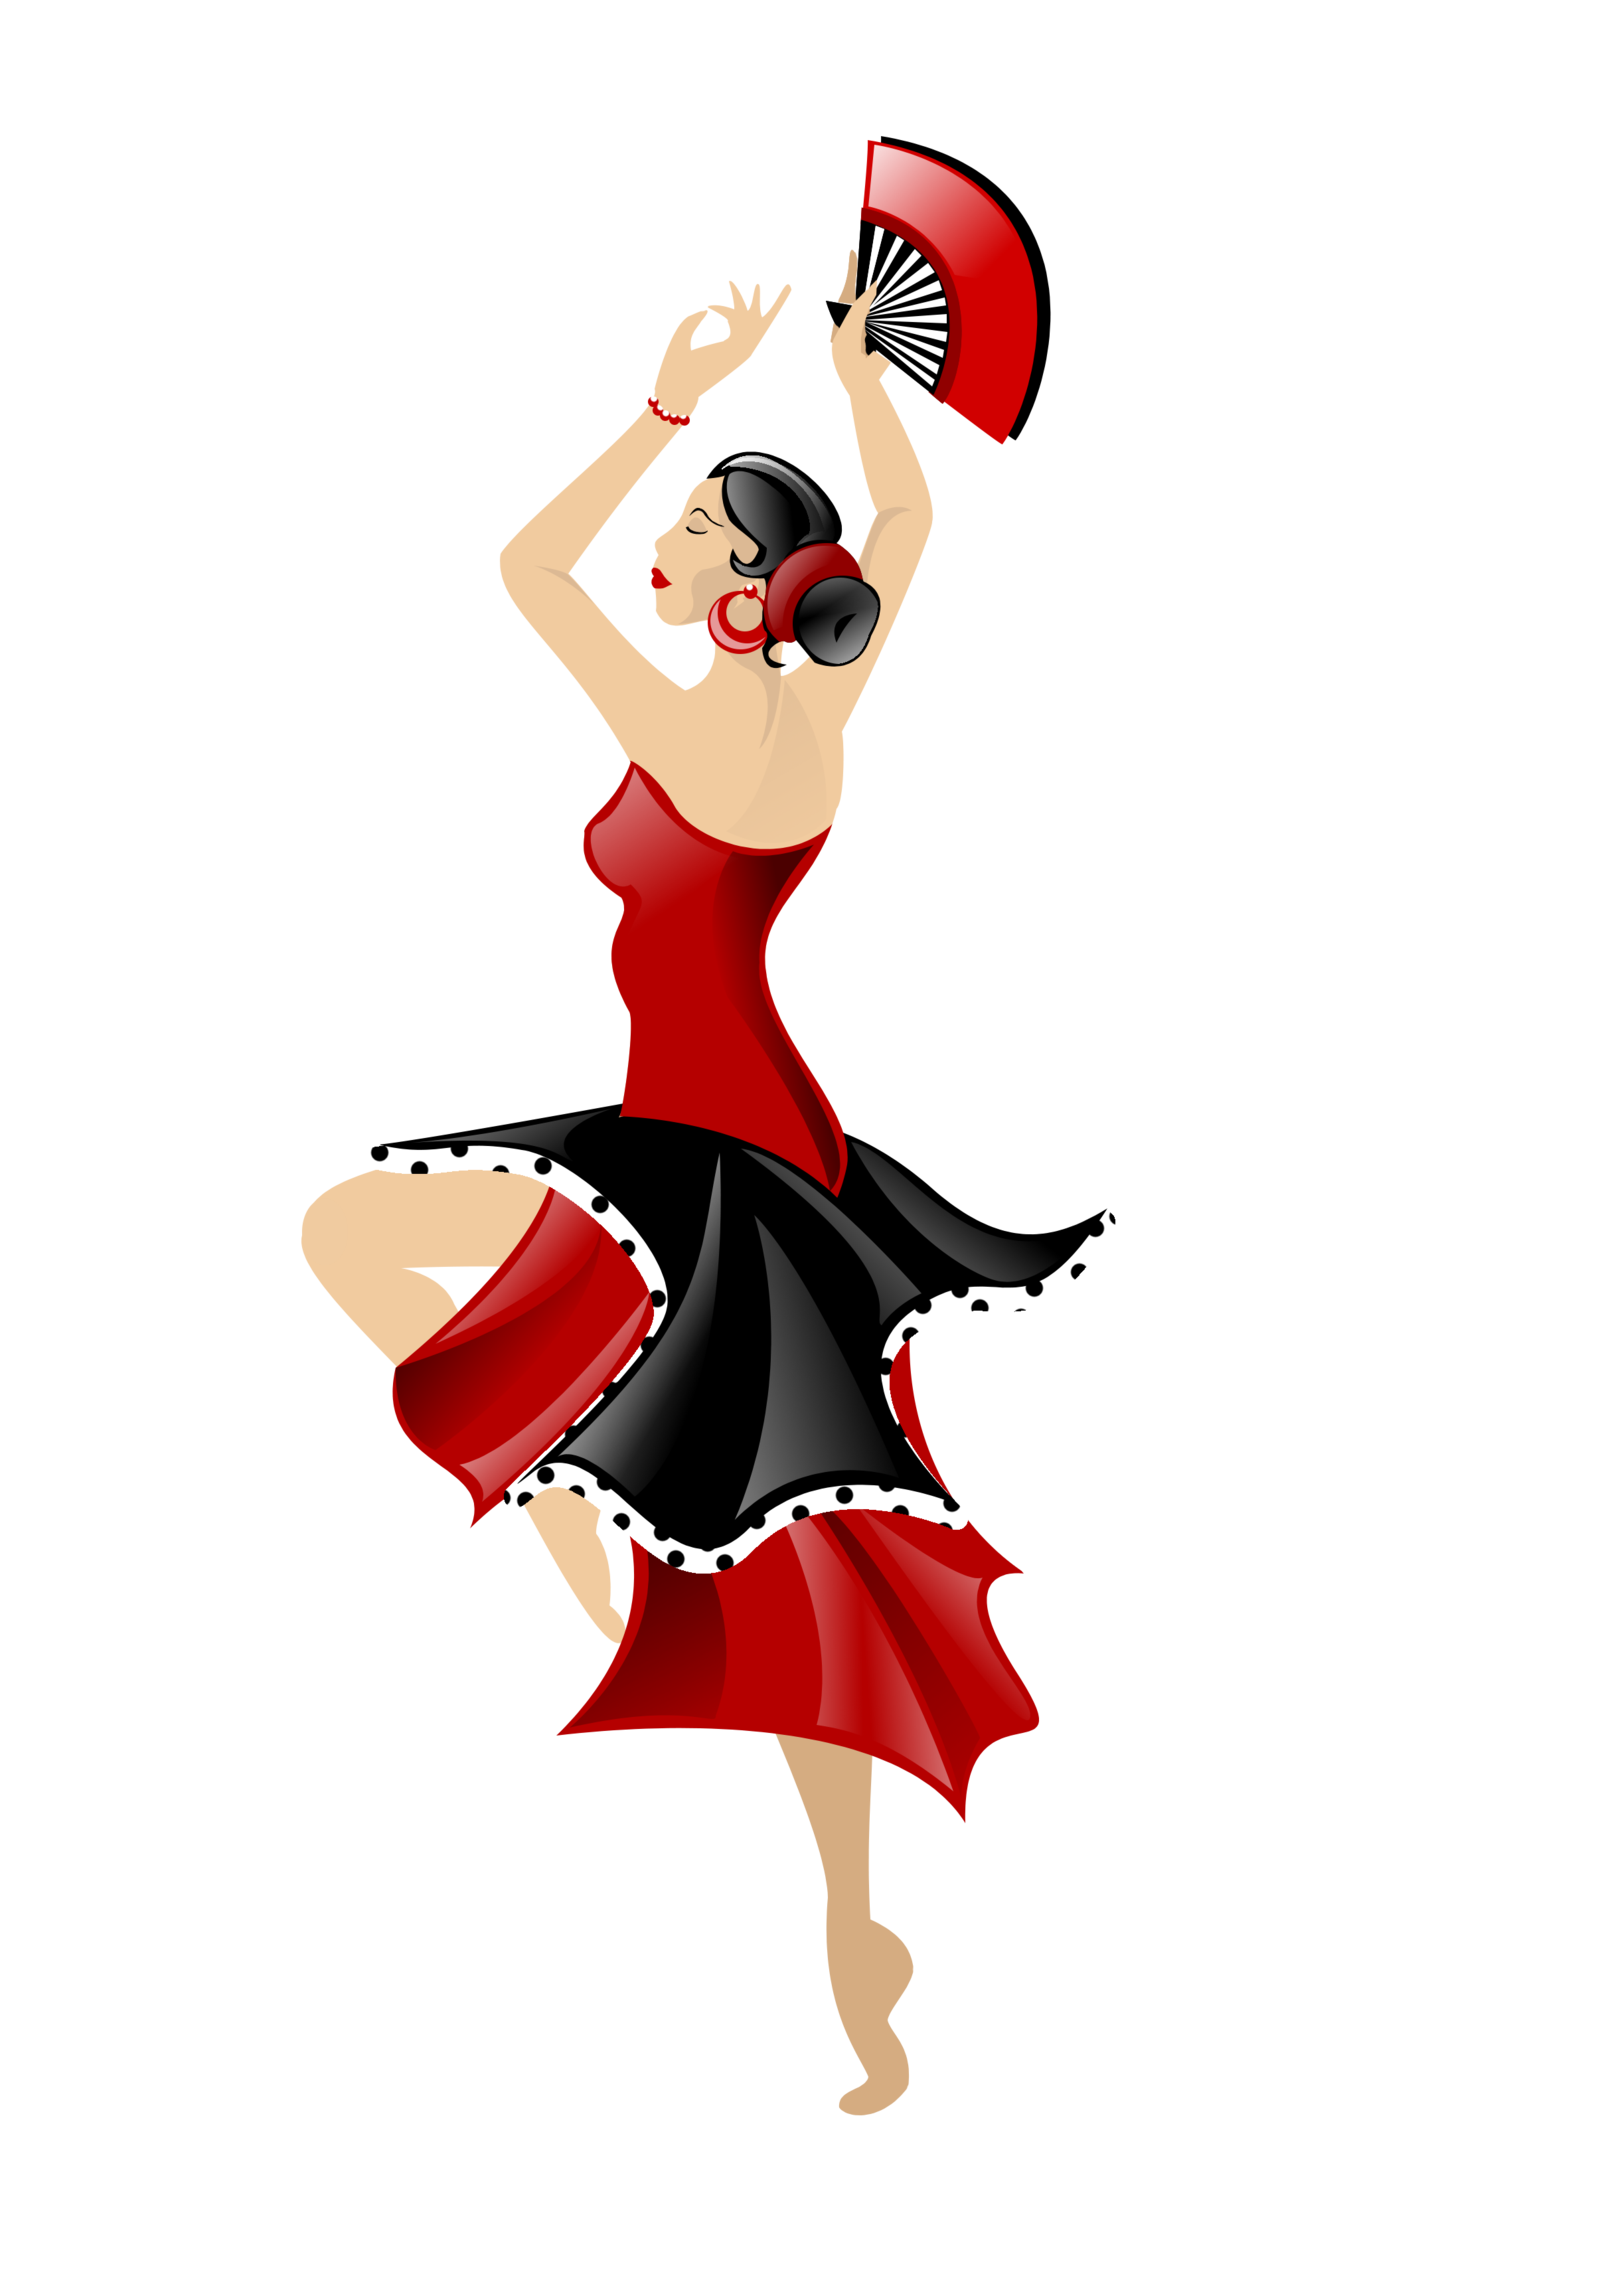 Cartoon flamenco dancer.